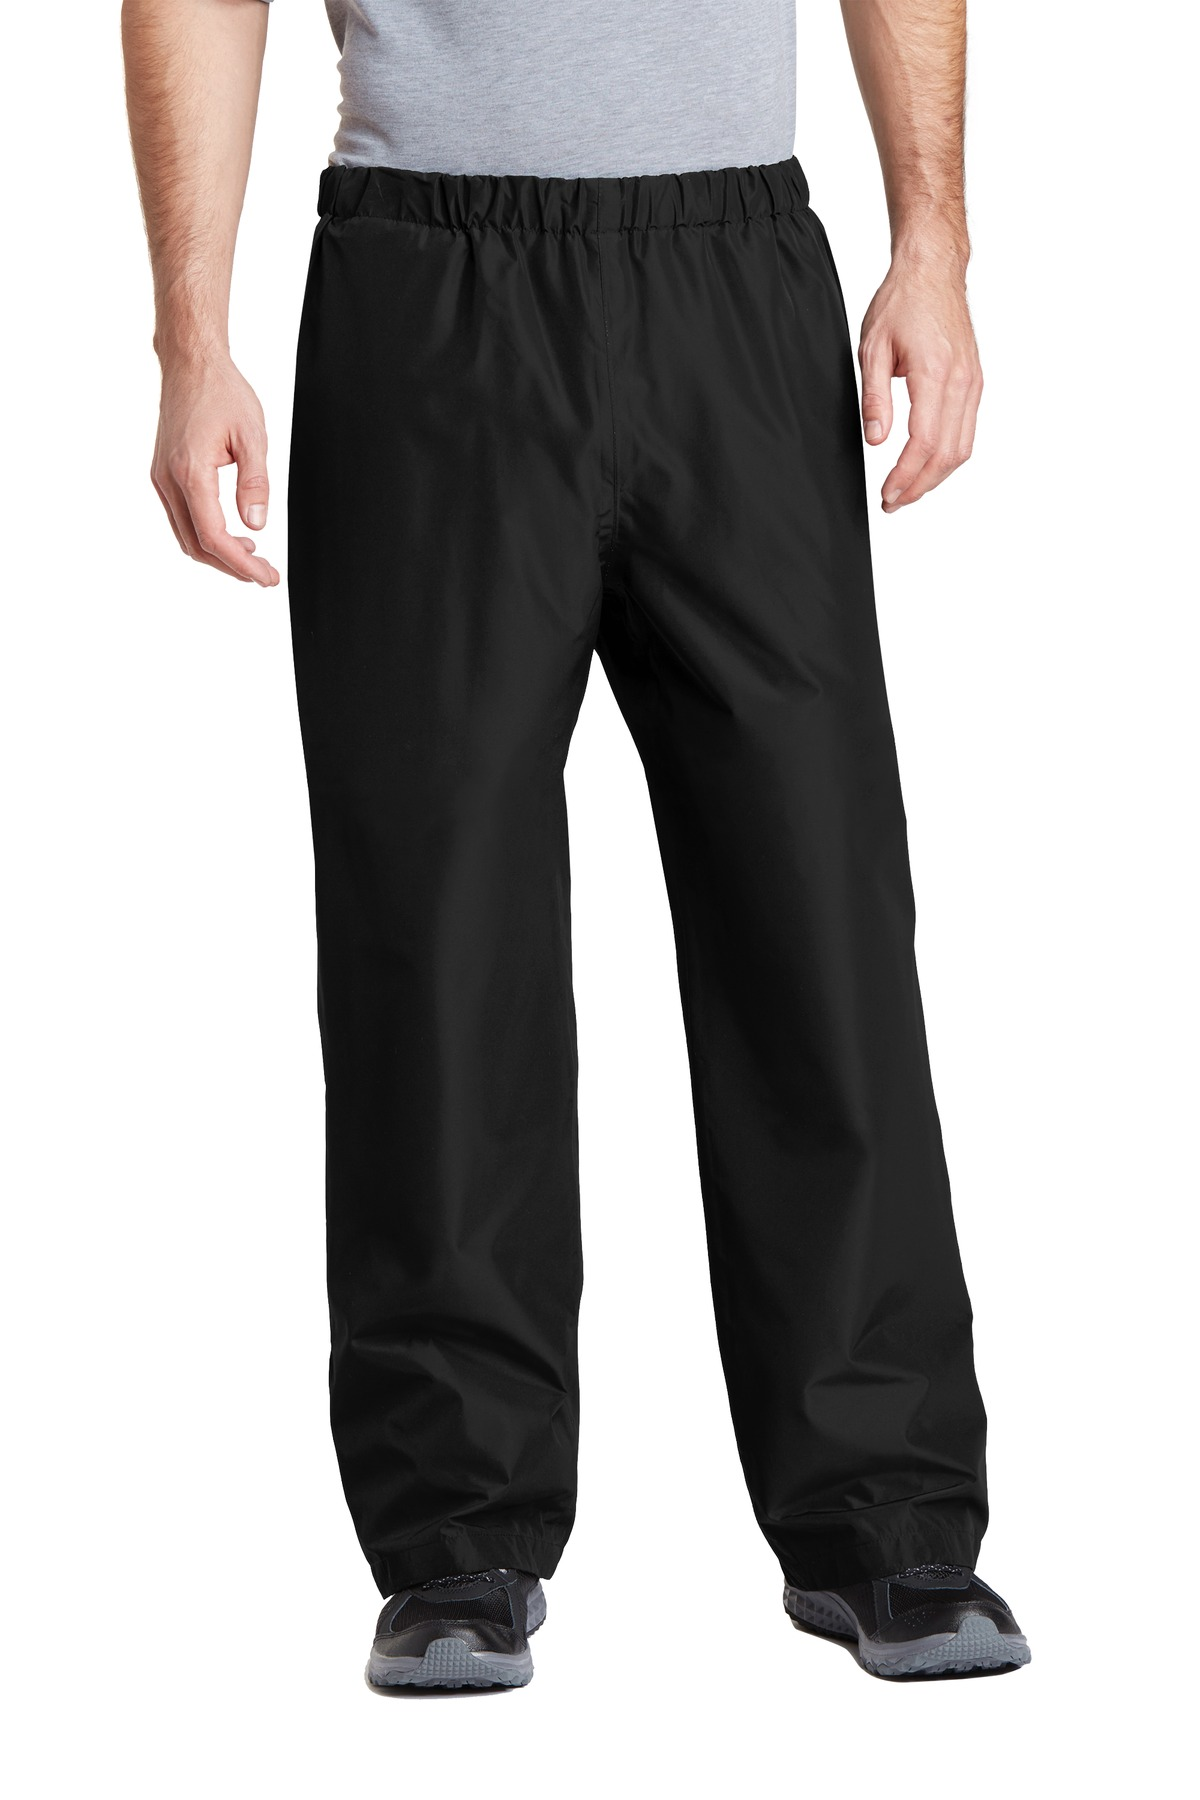 Port Authority  PT333 - Torrent Waterproof Pant